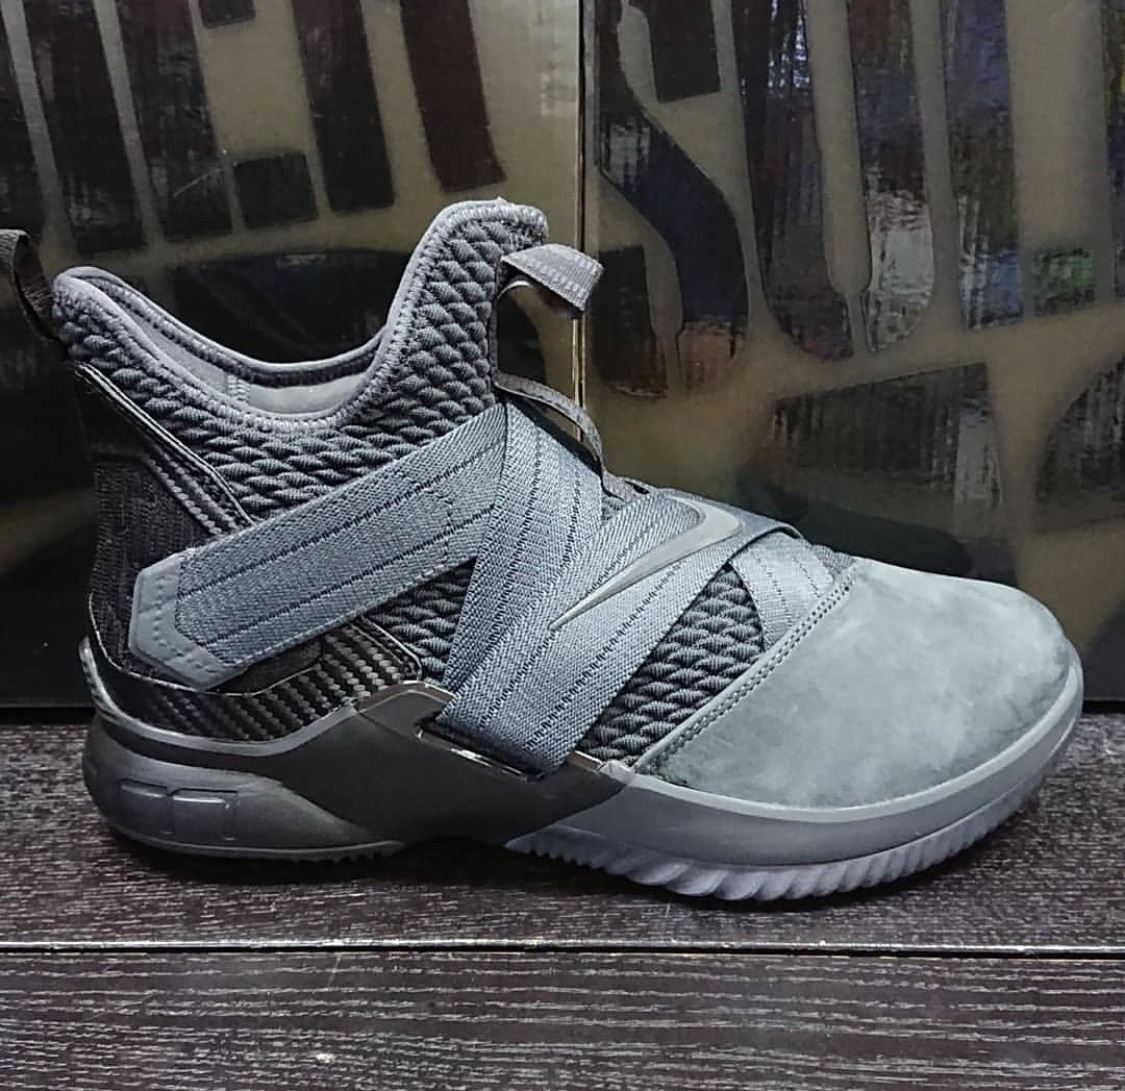 buy online 2f0e4 62514 Nike LeBron Soldier 12 SFG Surfaces in Grey - WearTesters